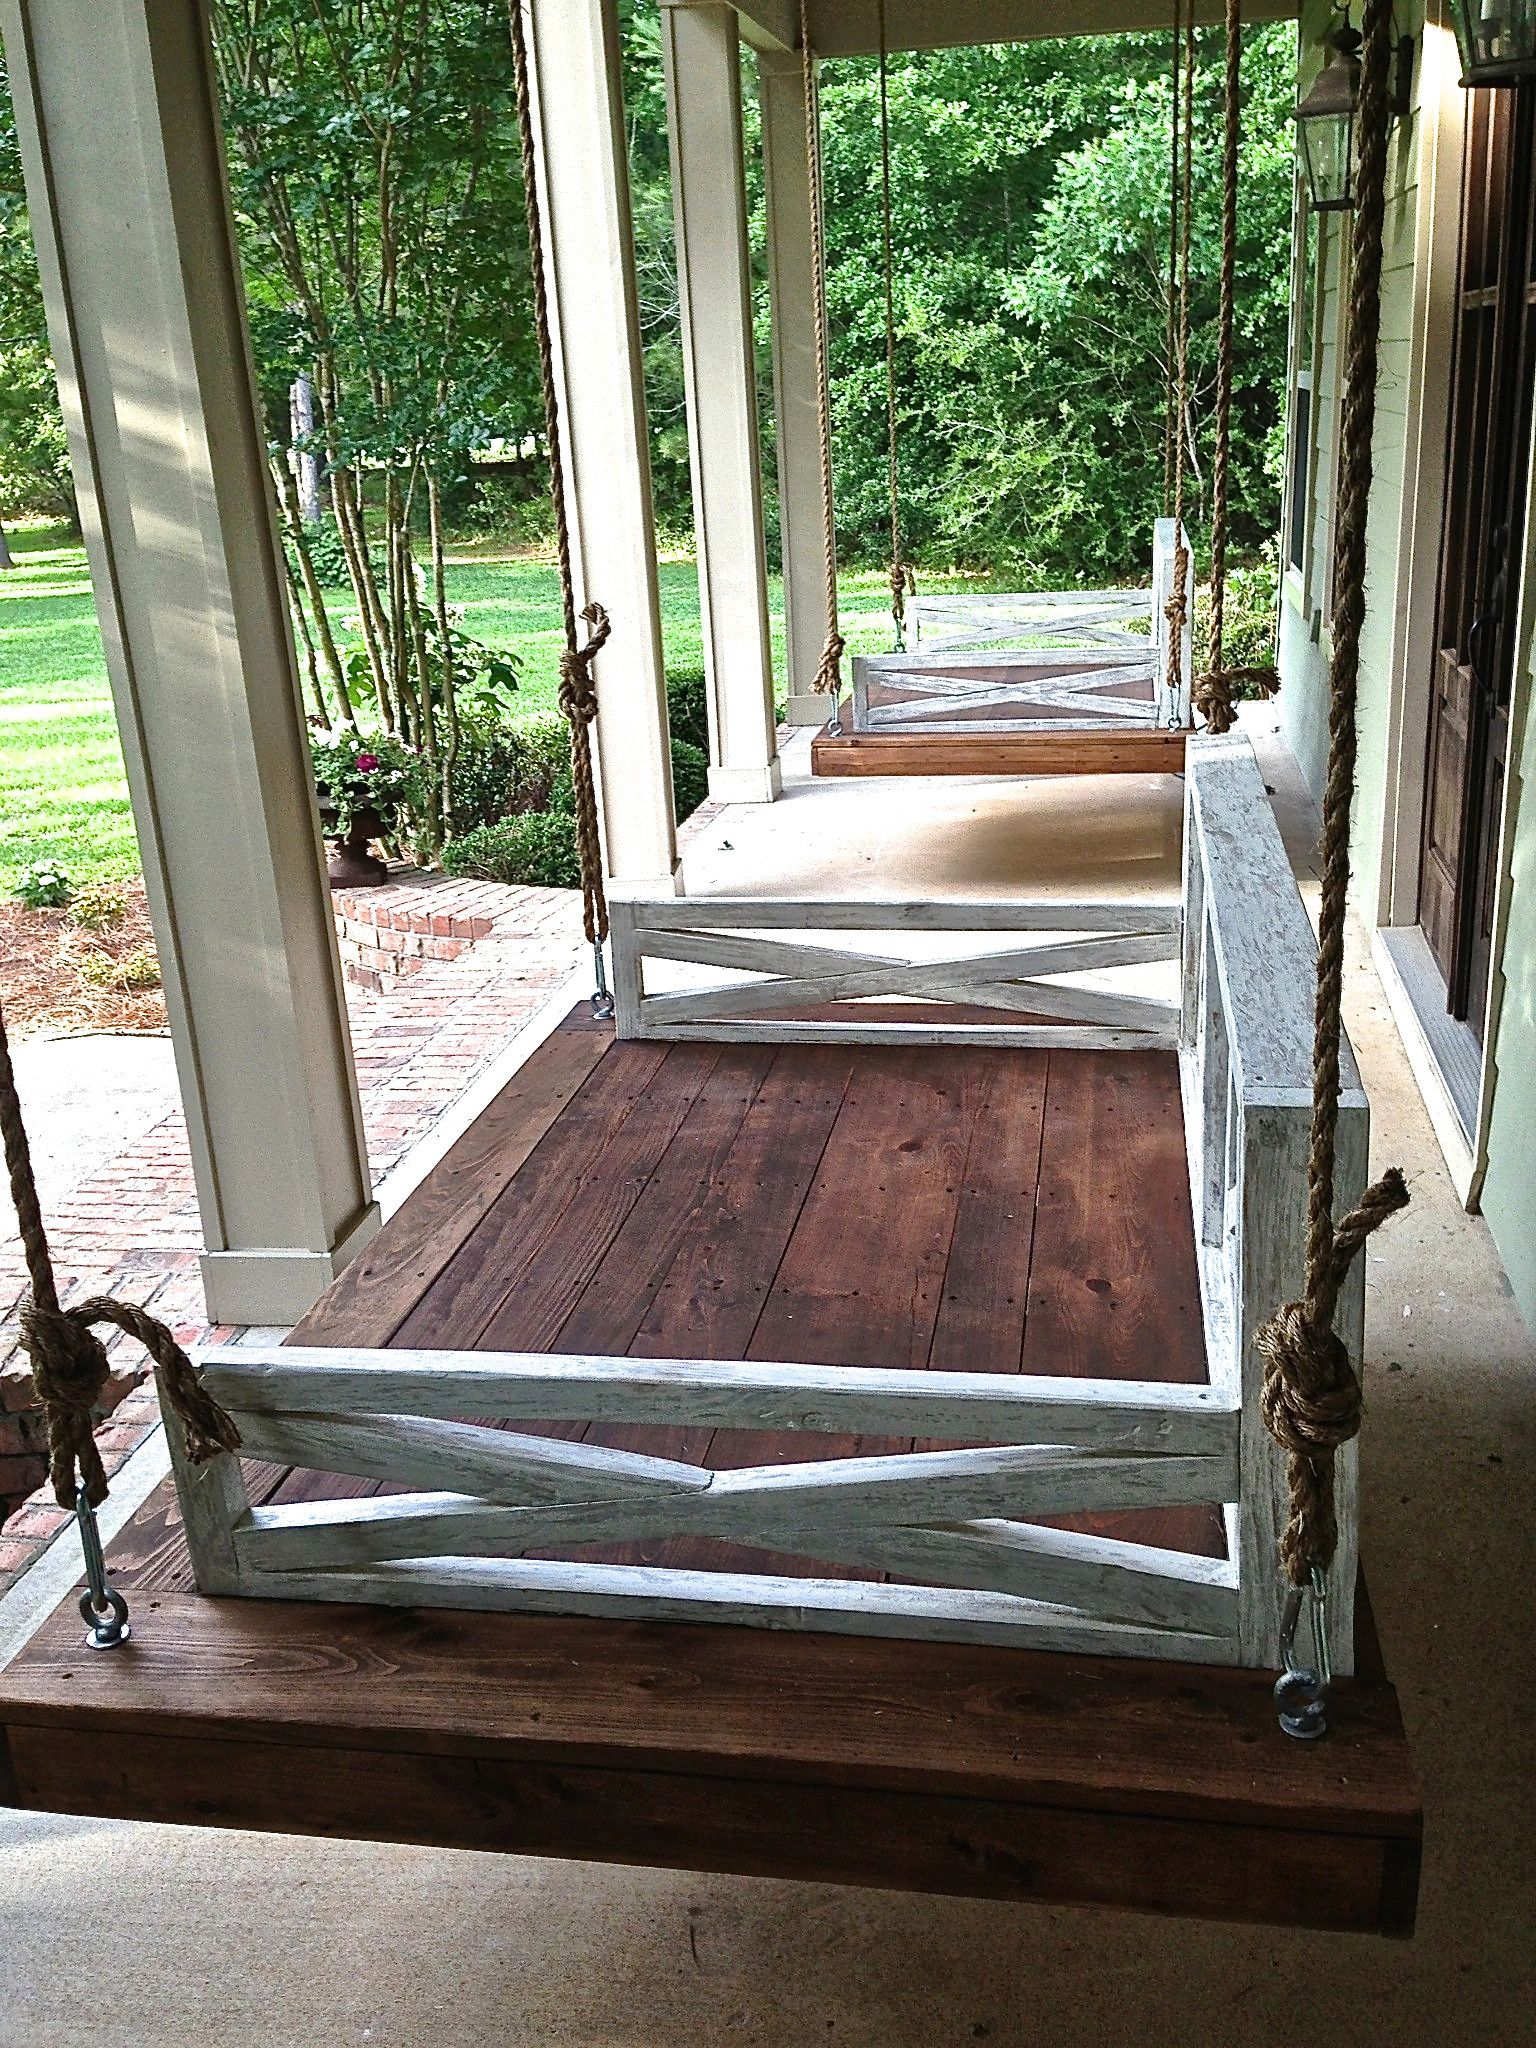 little space for a drink on side custom built distressed daybed swing porch swing - Front Porch Swing